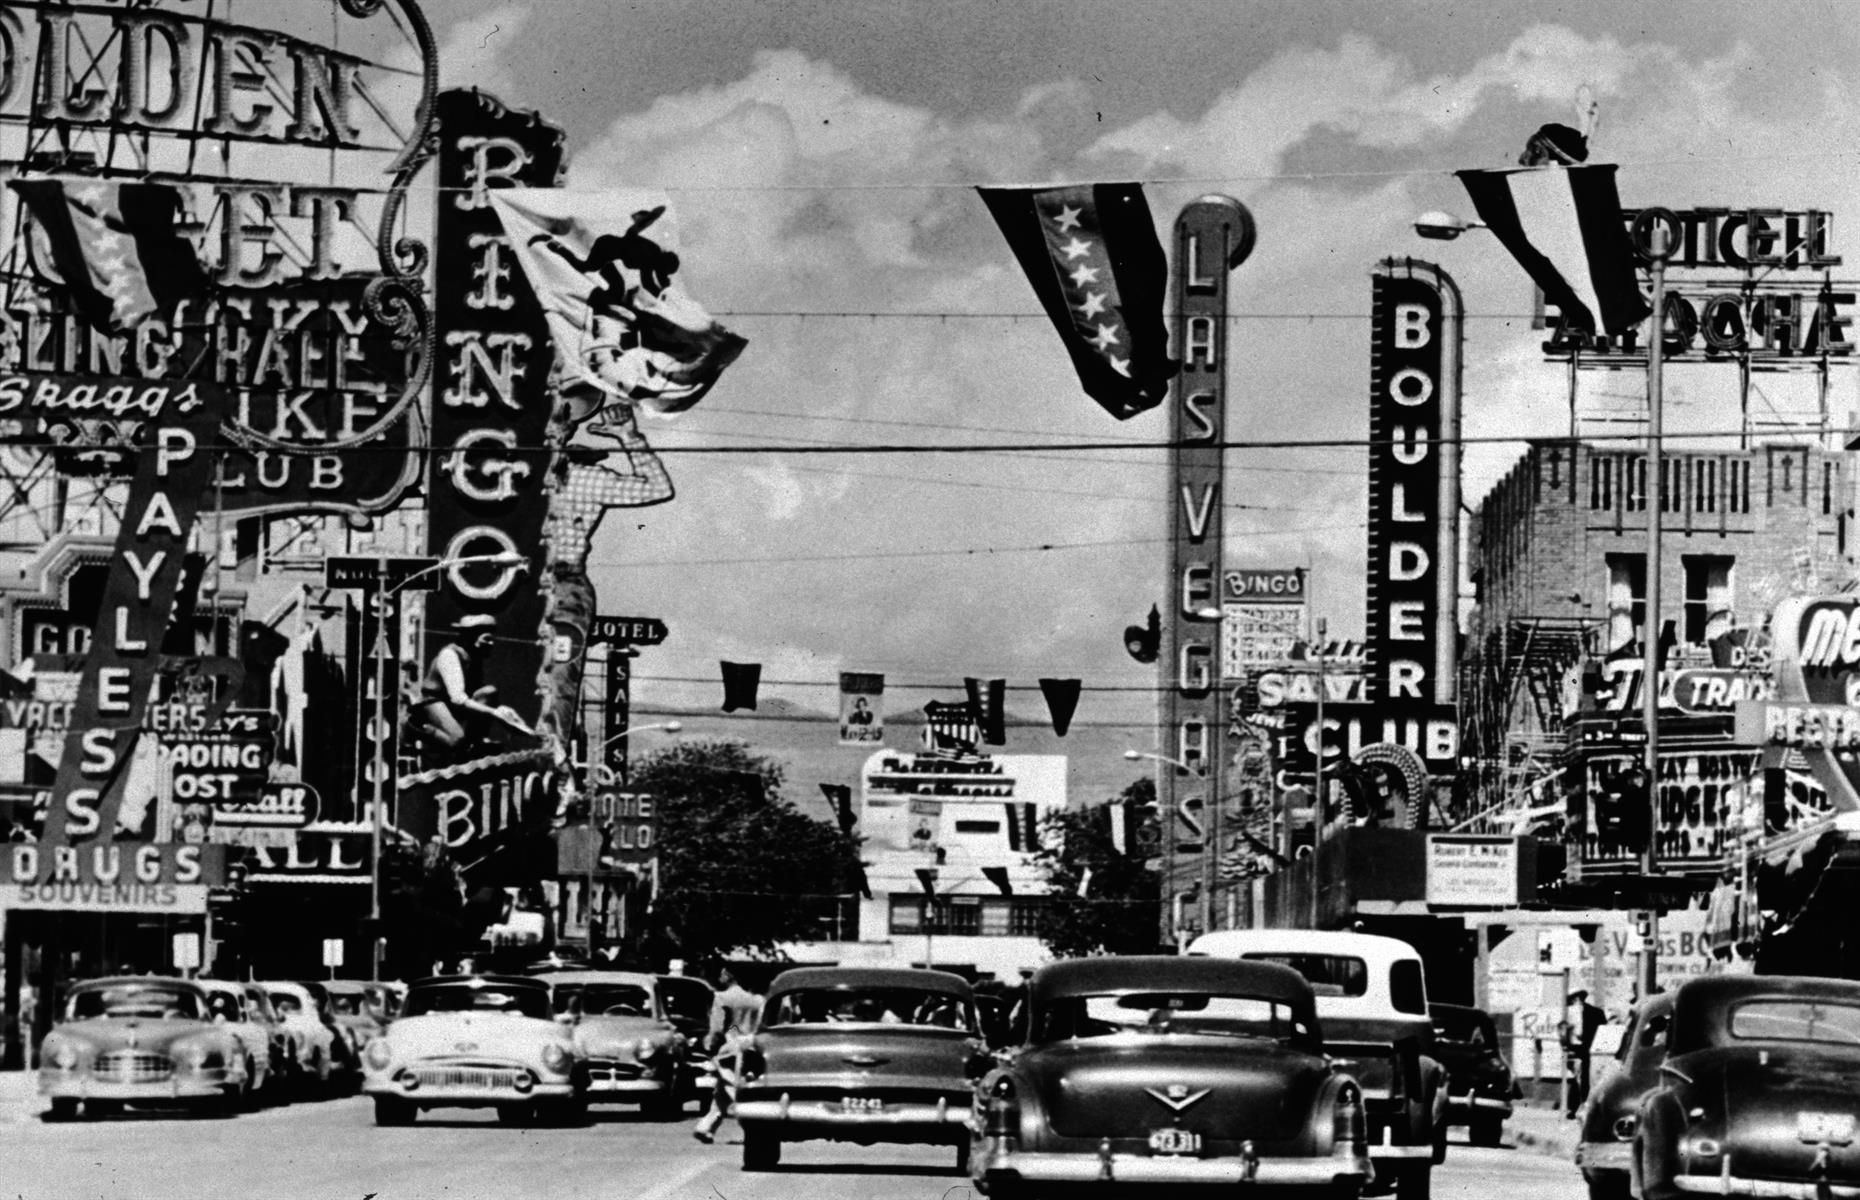 Slide 21 of 47: Before Las Vegas became all about The Strip, Downtown's Fremont Street was the place to be, and this buzzy boulevard remains a top attraction in Sin City. Glitter Gulch, as it came to be known, built up during the 1920s, and thrived after gambling was decriminalized in 1931. It's shown here in the 1950s, clogged with cars driving past its winking neon signs.